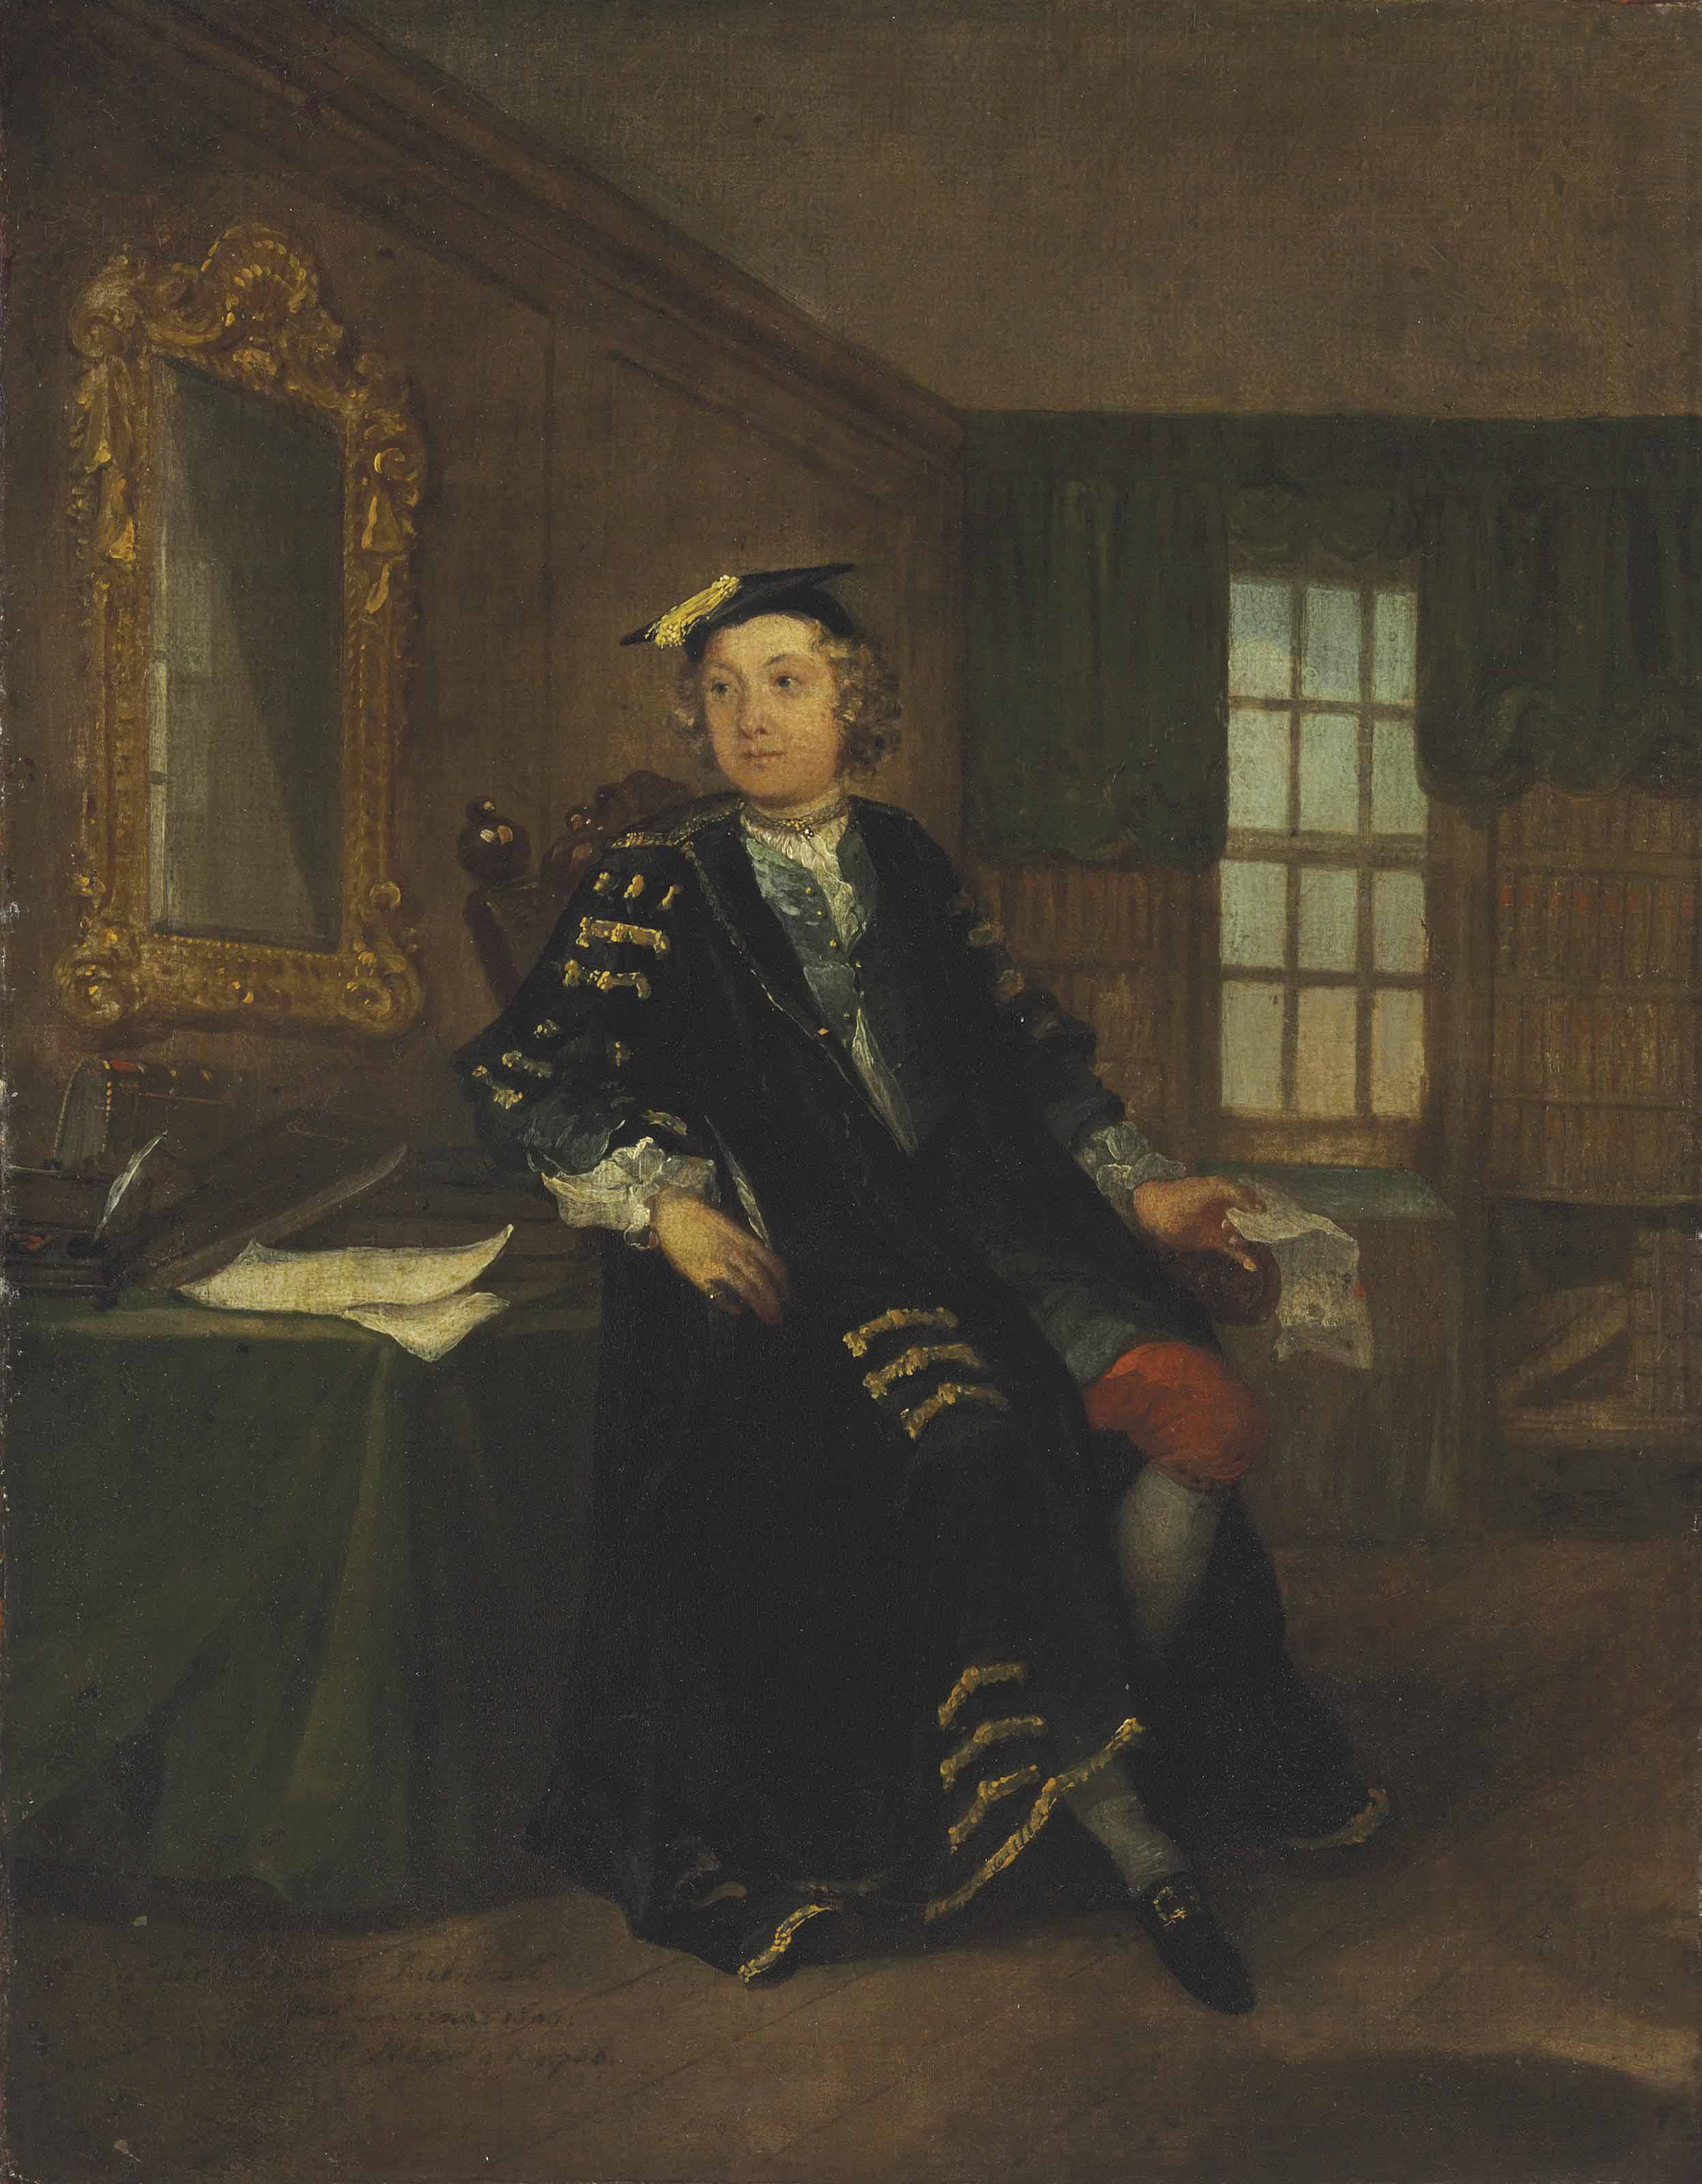 Portrait of Thomas Western (1714-1766), small full-length, in his study at Clare Hall, Cambridge